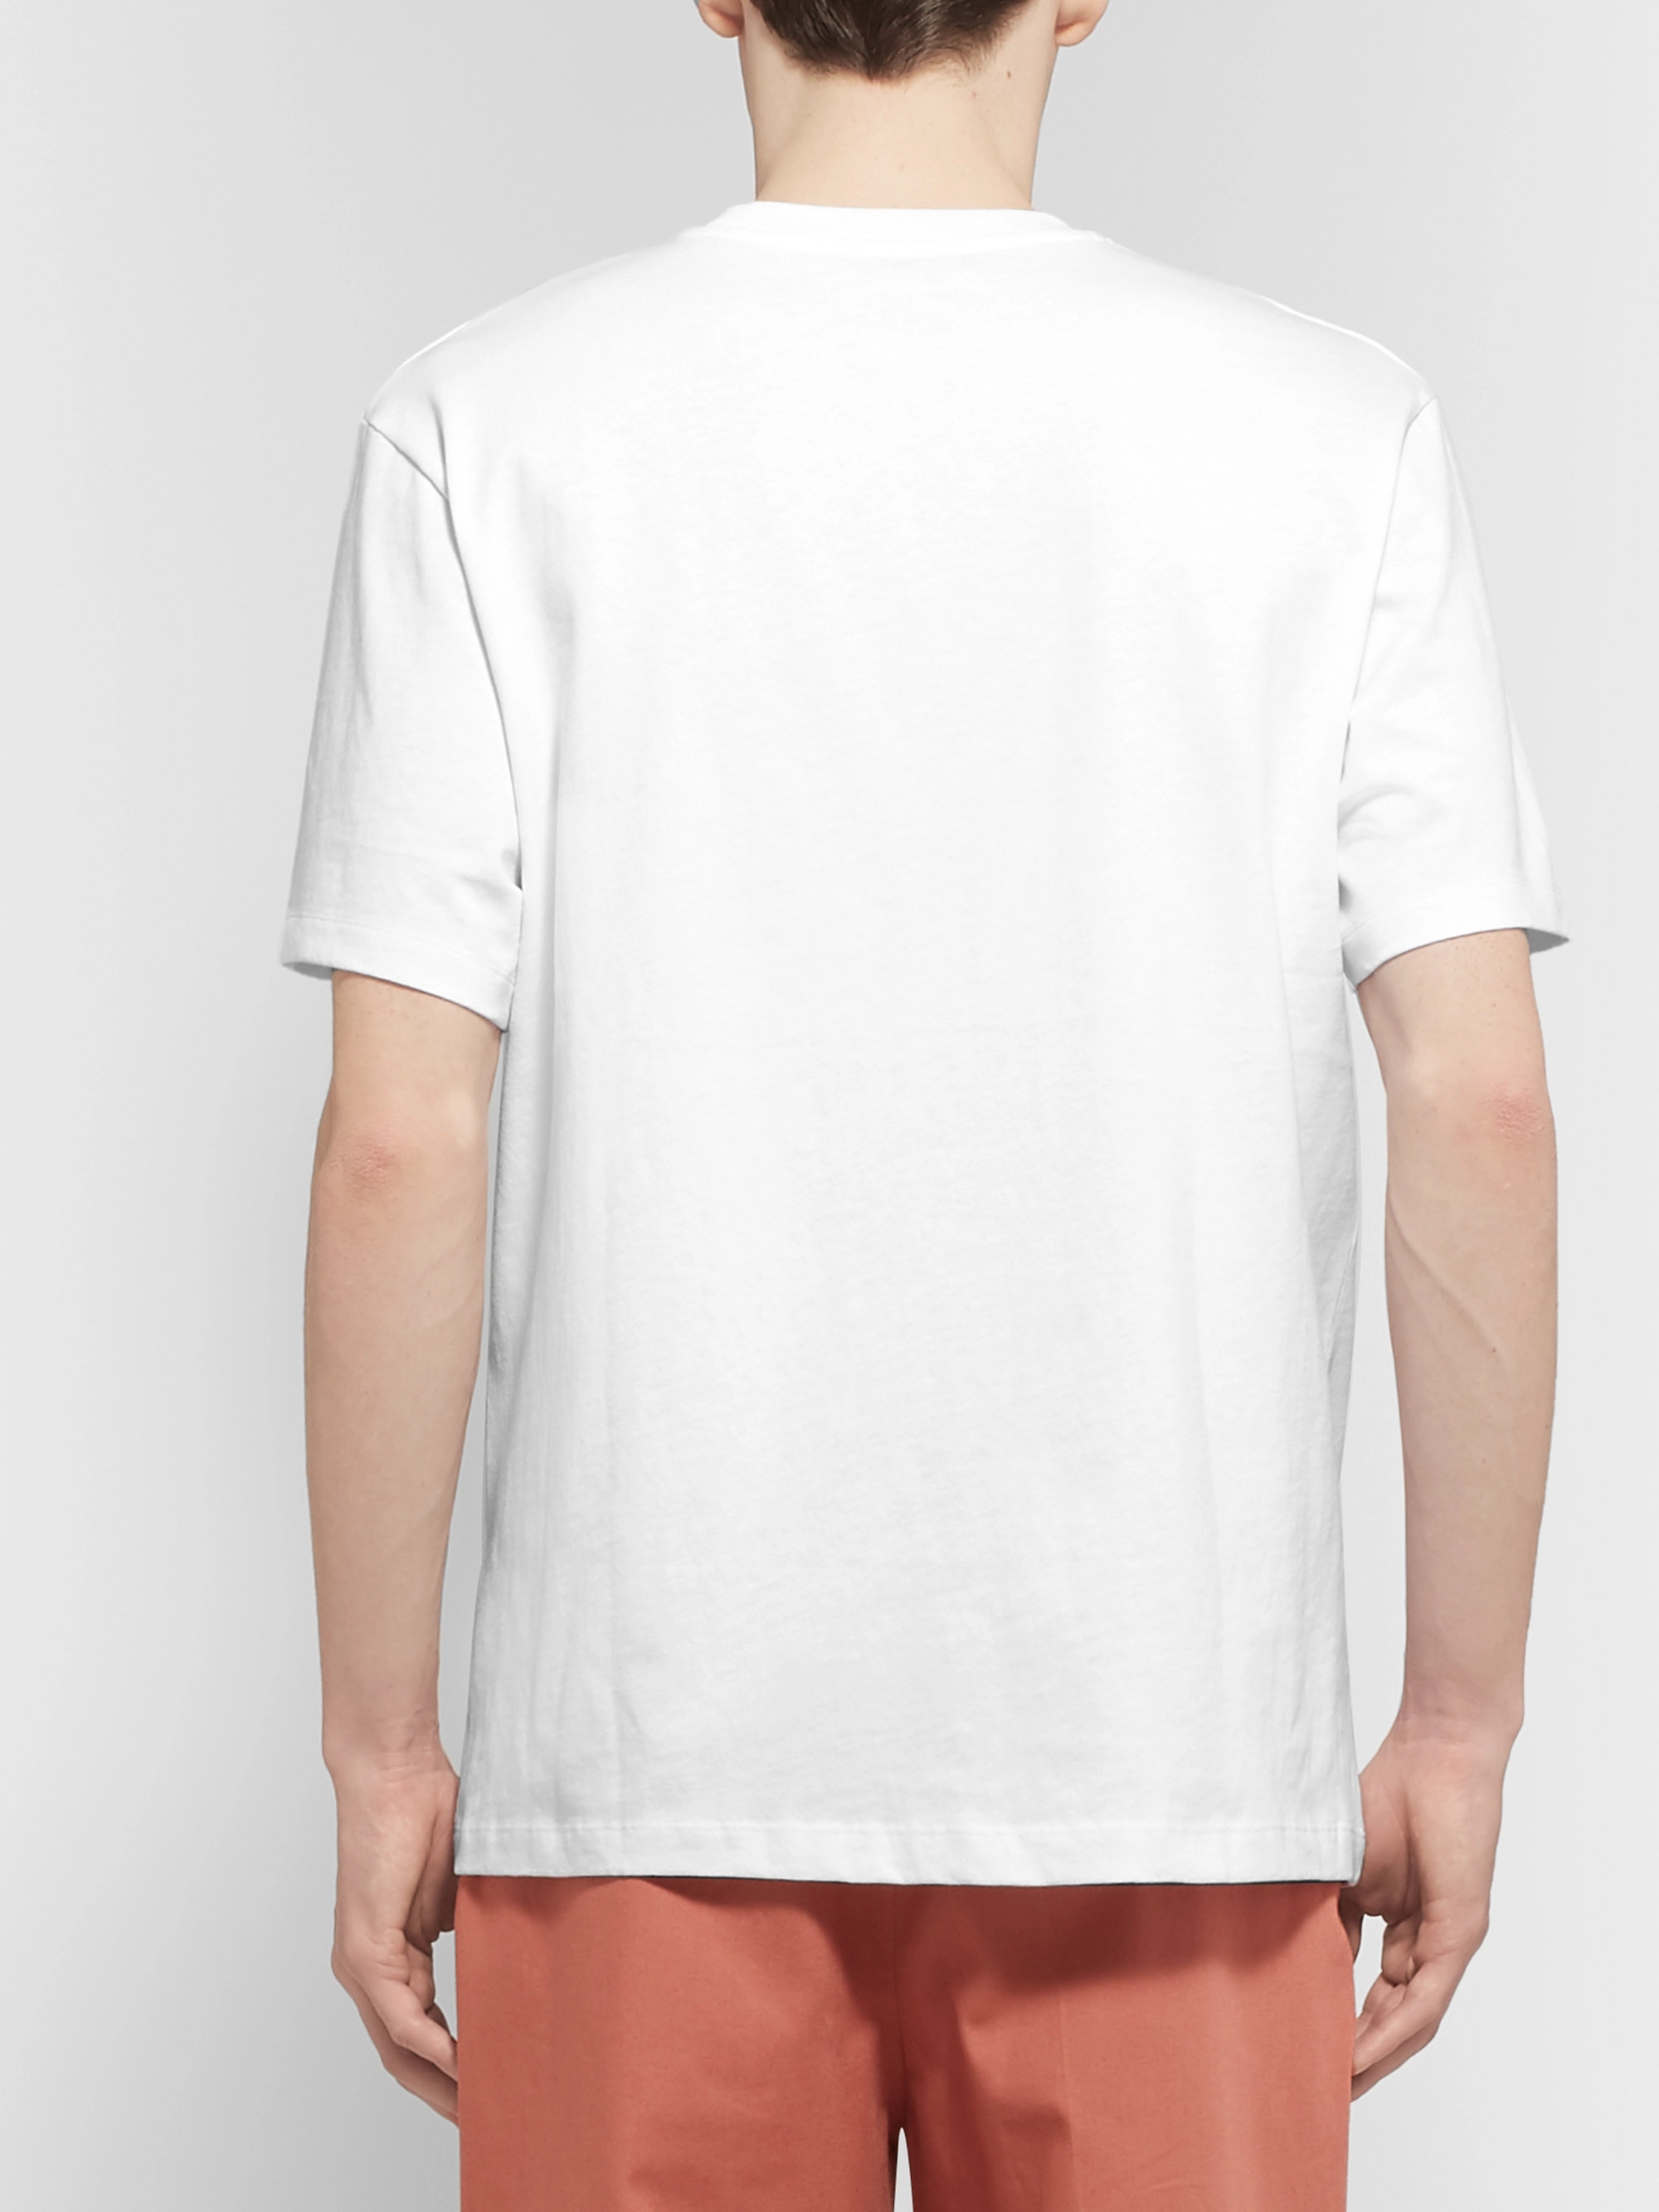 Acne Studios Jaceye Printed Cotton-Jersey T-Shirt